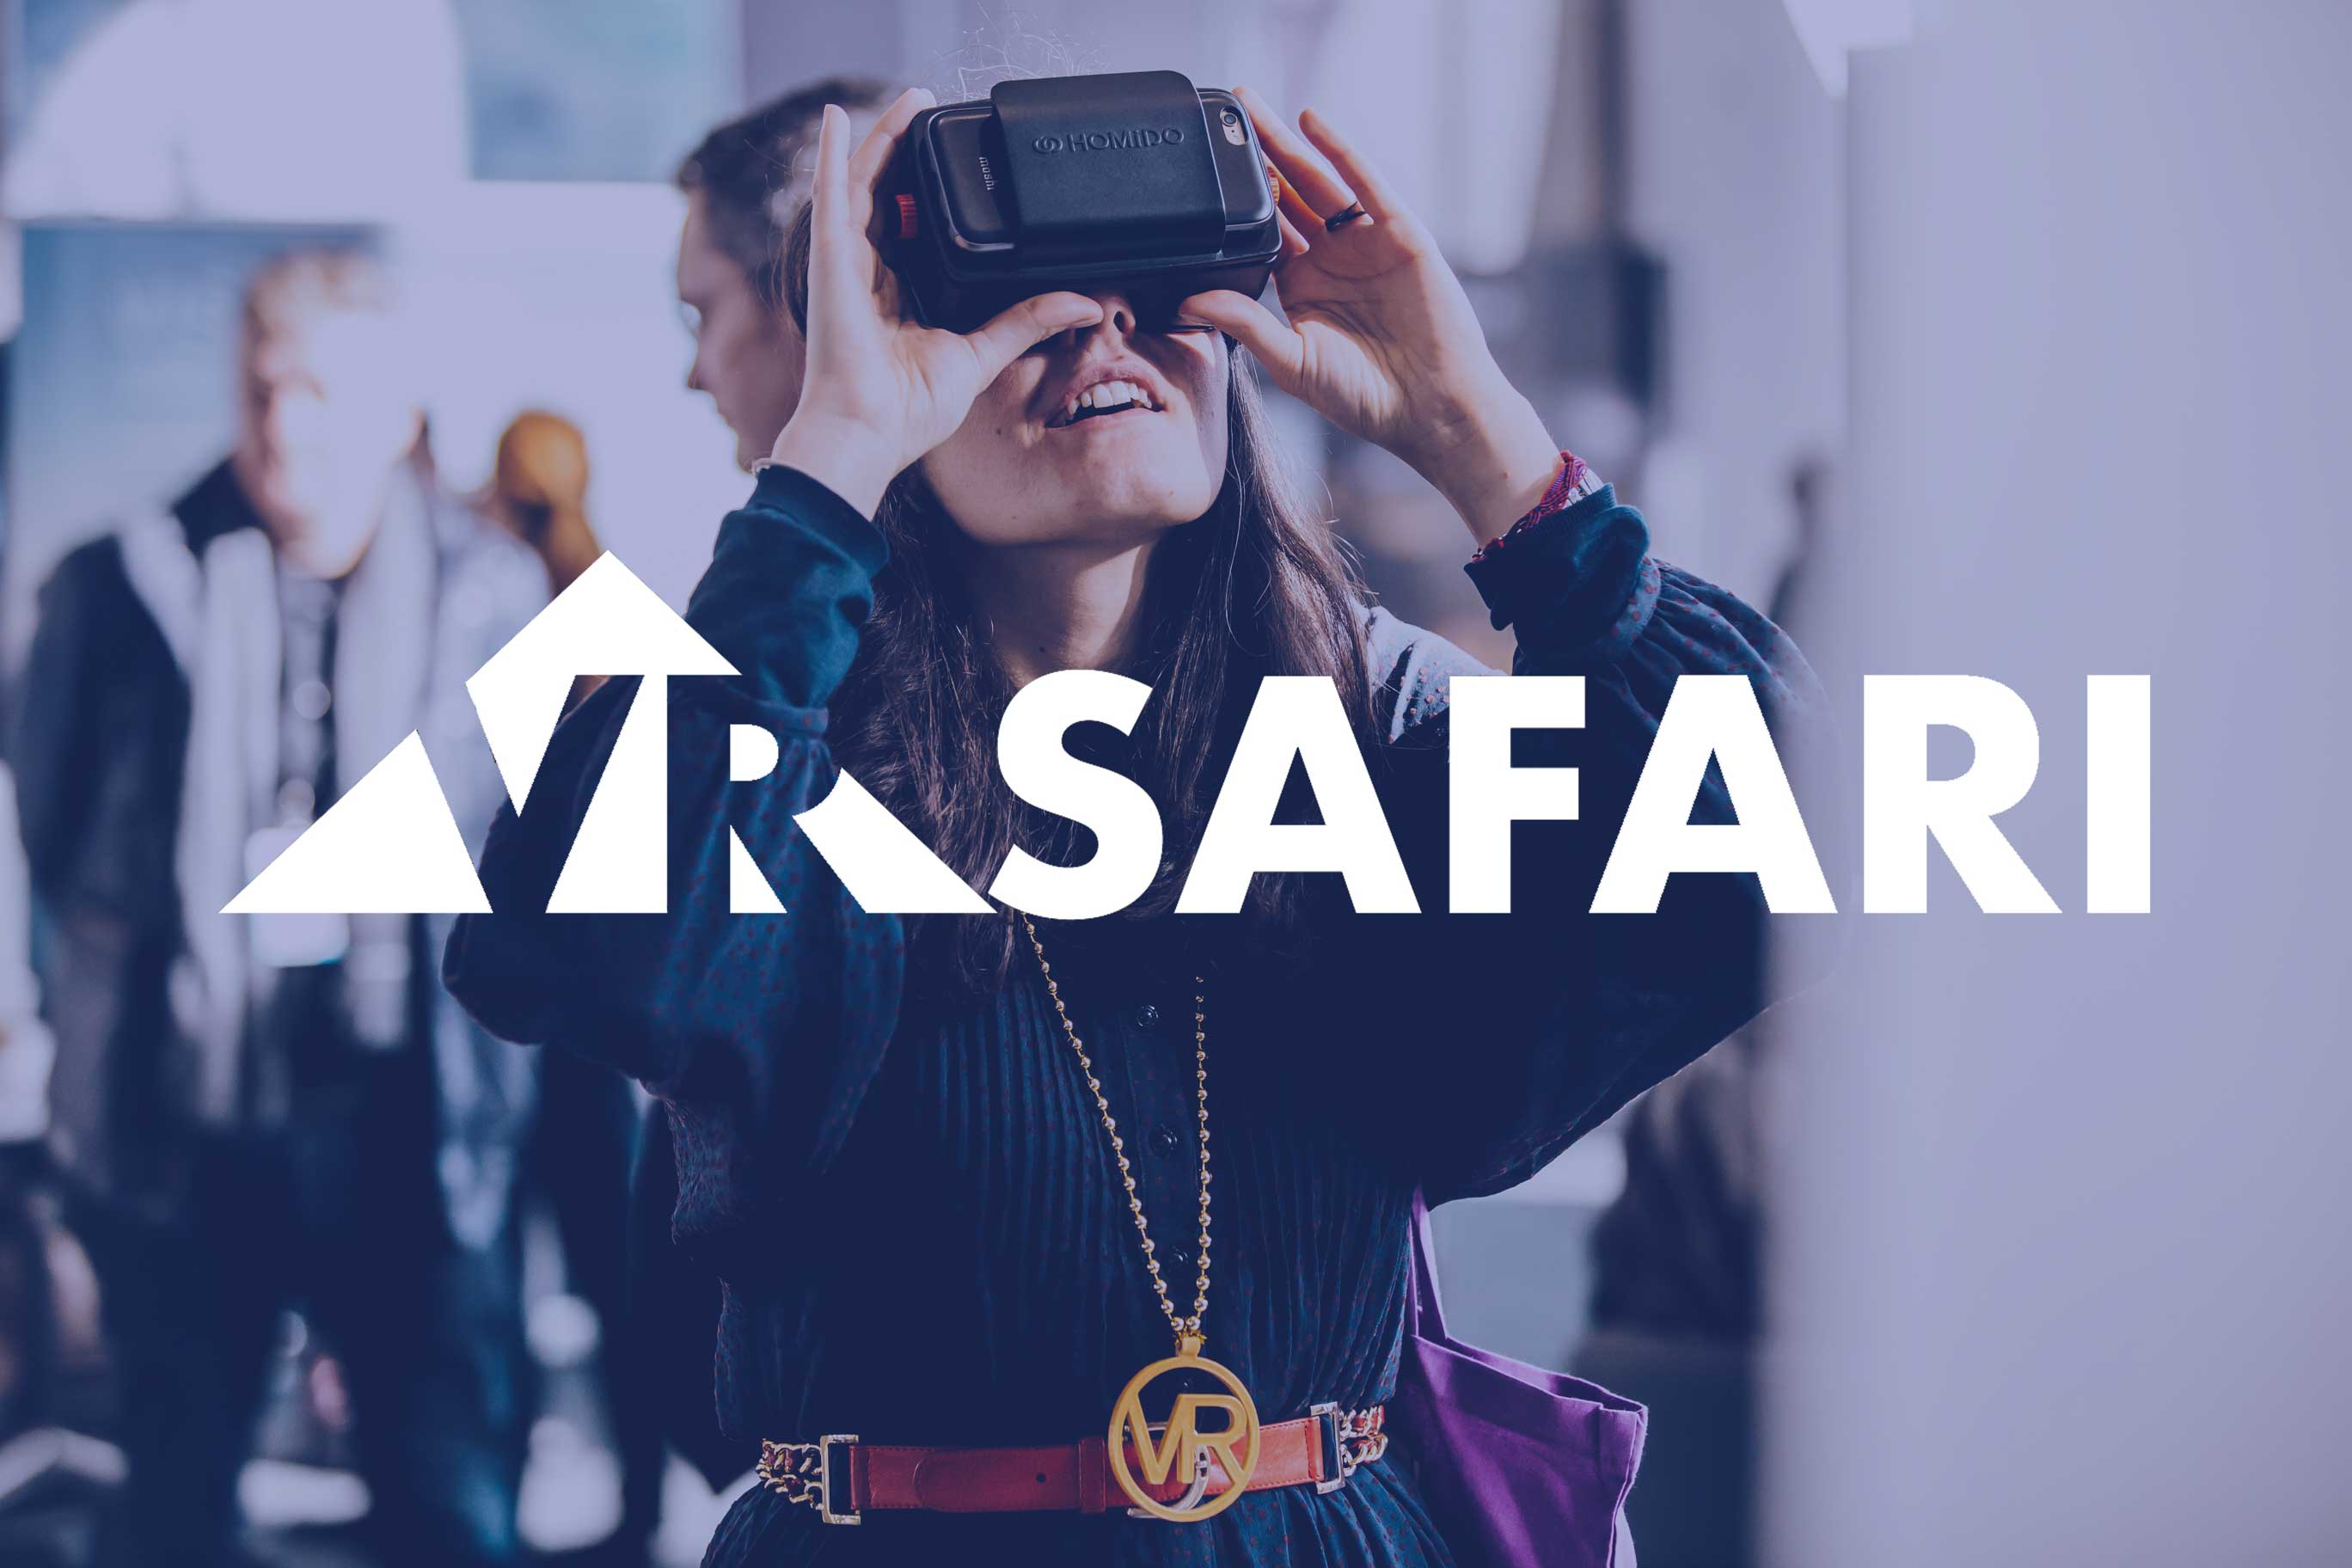 VR Safari Immersive Technology Workshops - headset demo